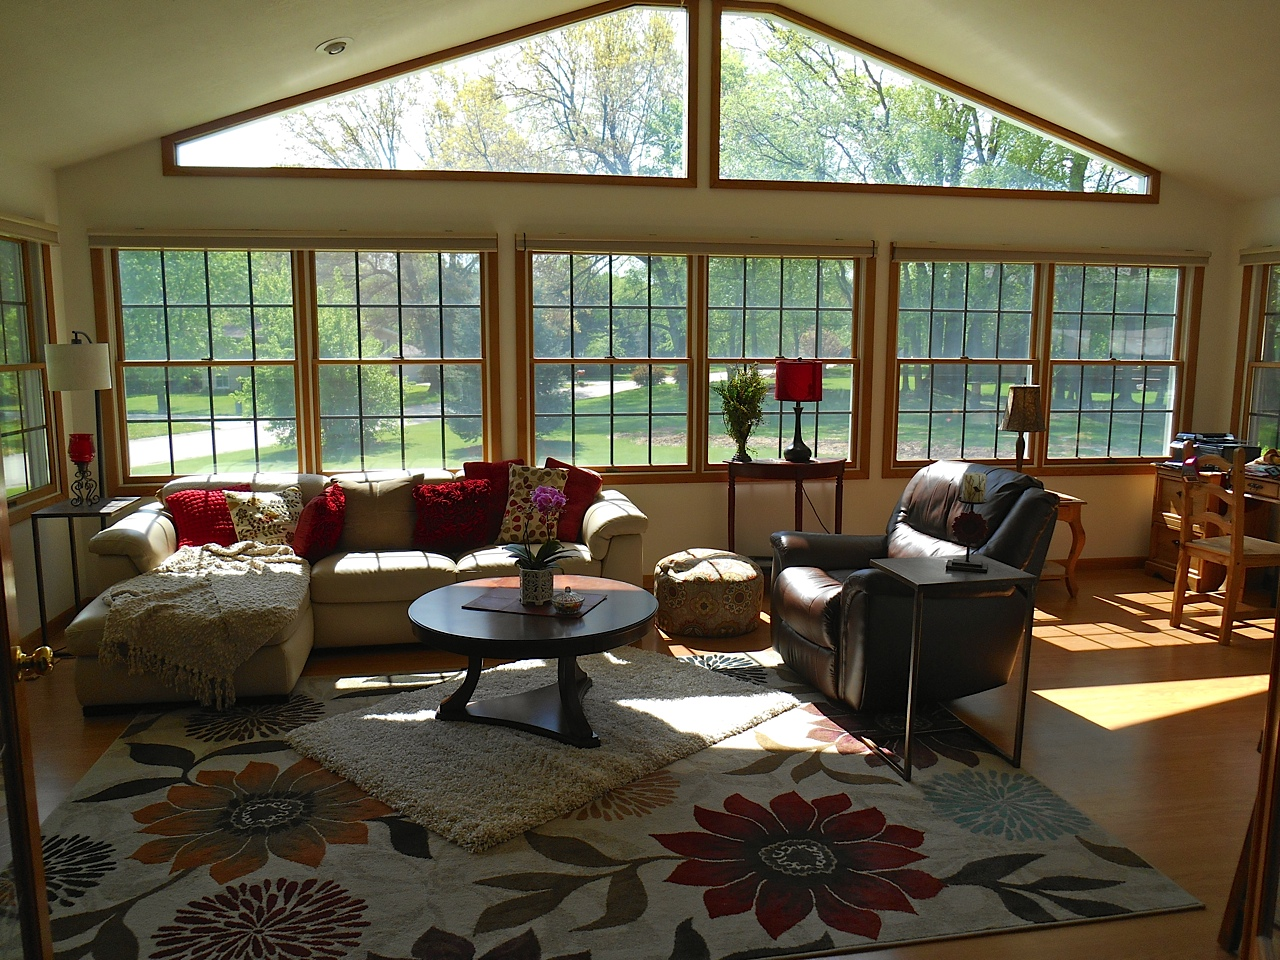 Interior view of sunroom